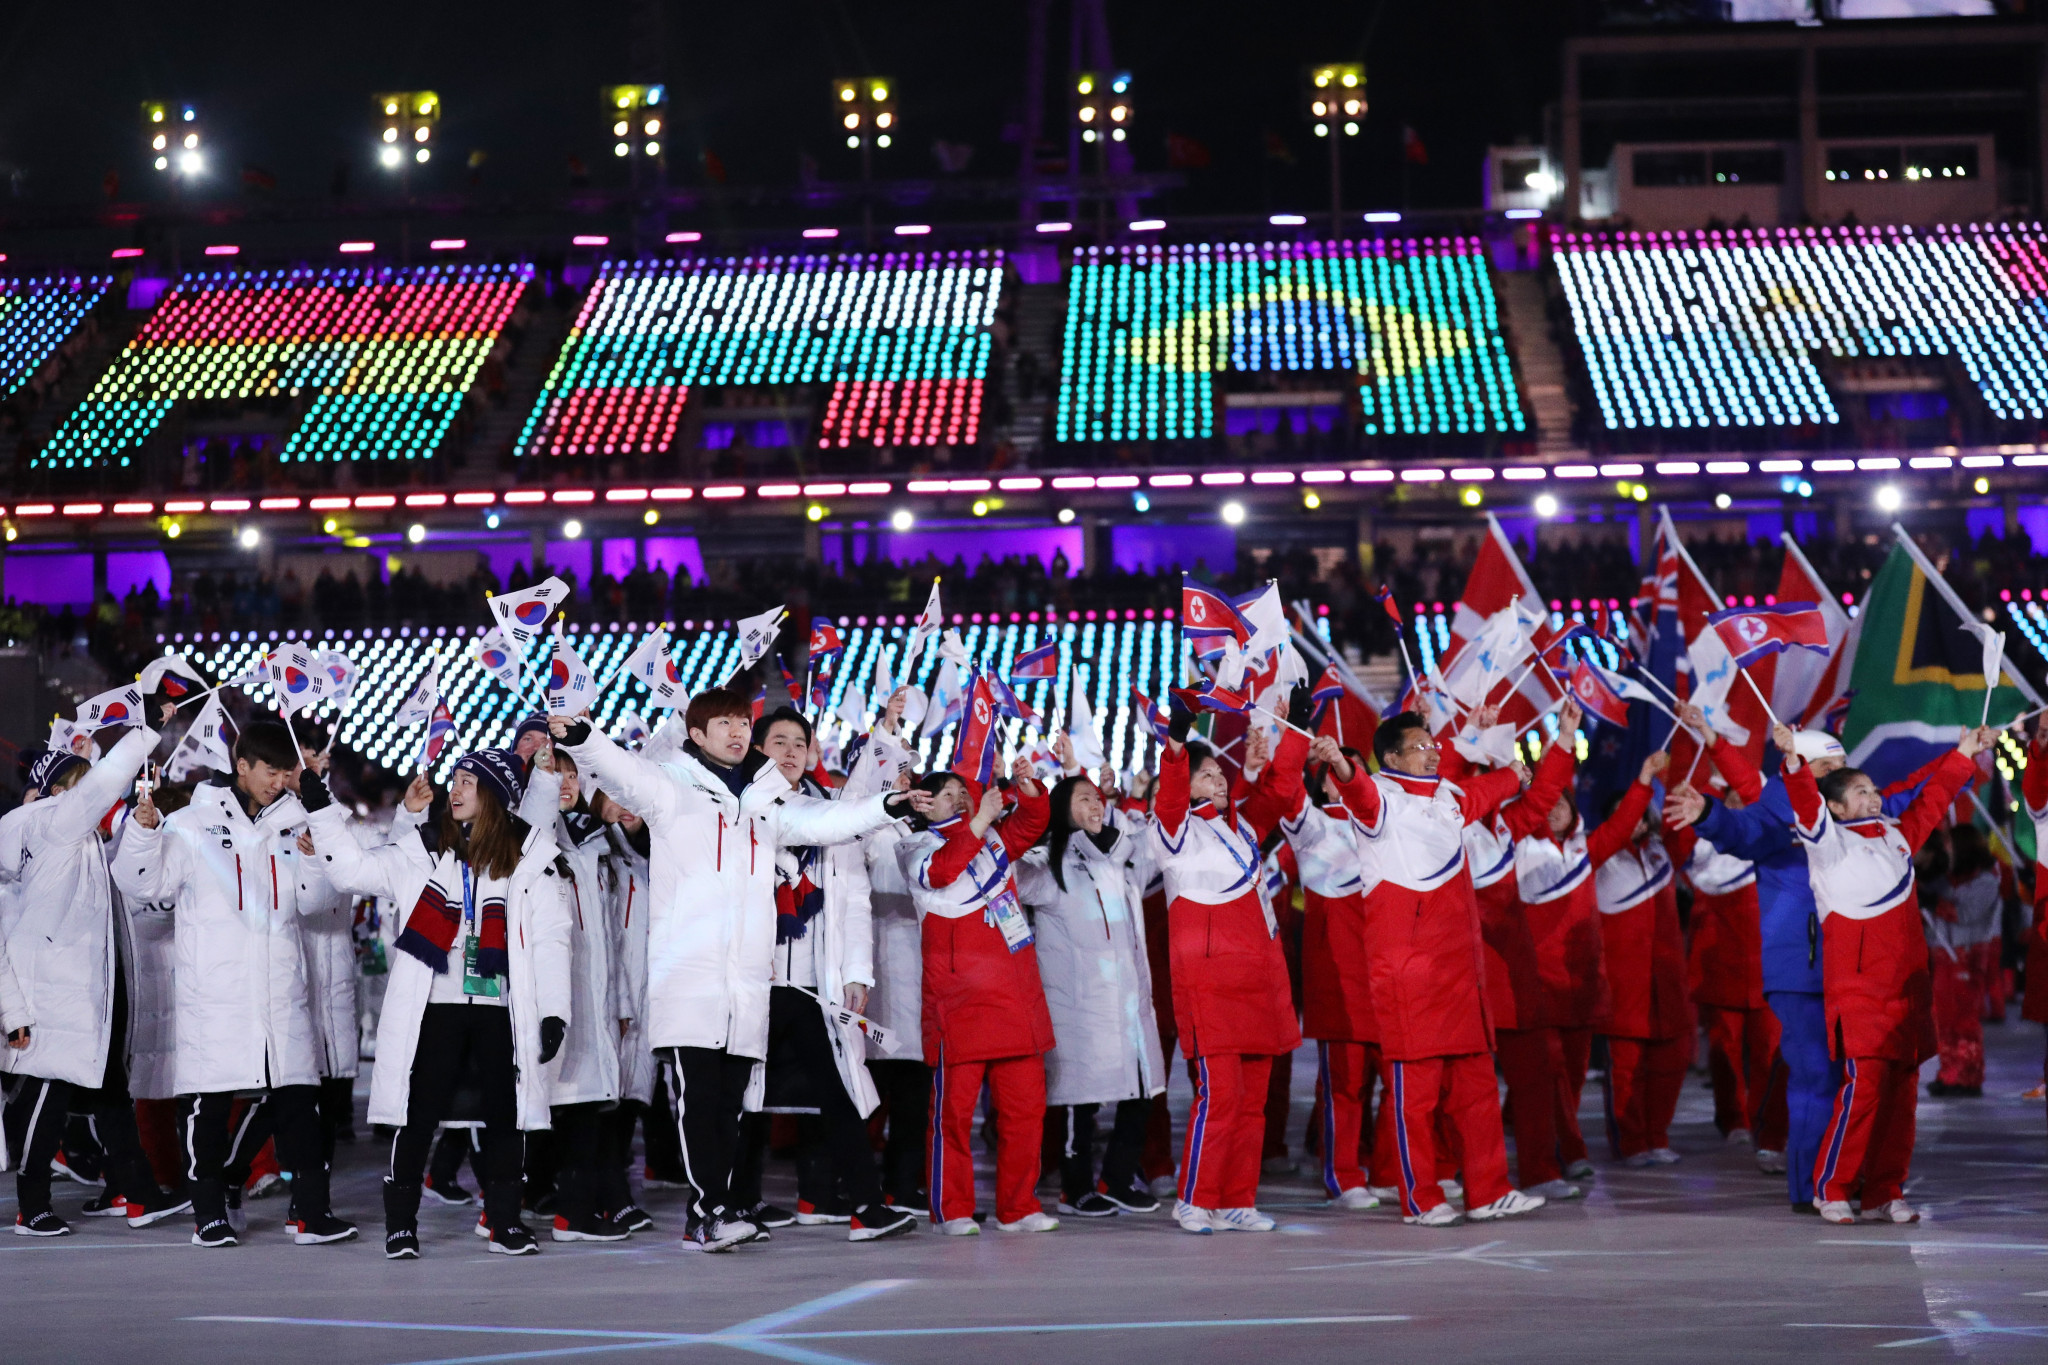 North and South Korean athletes marching together at the Closing Ceremony of Pyeongchang 2018 ©Getty Images